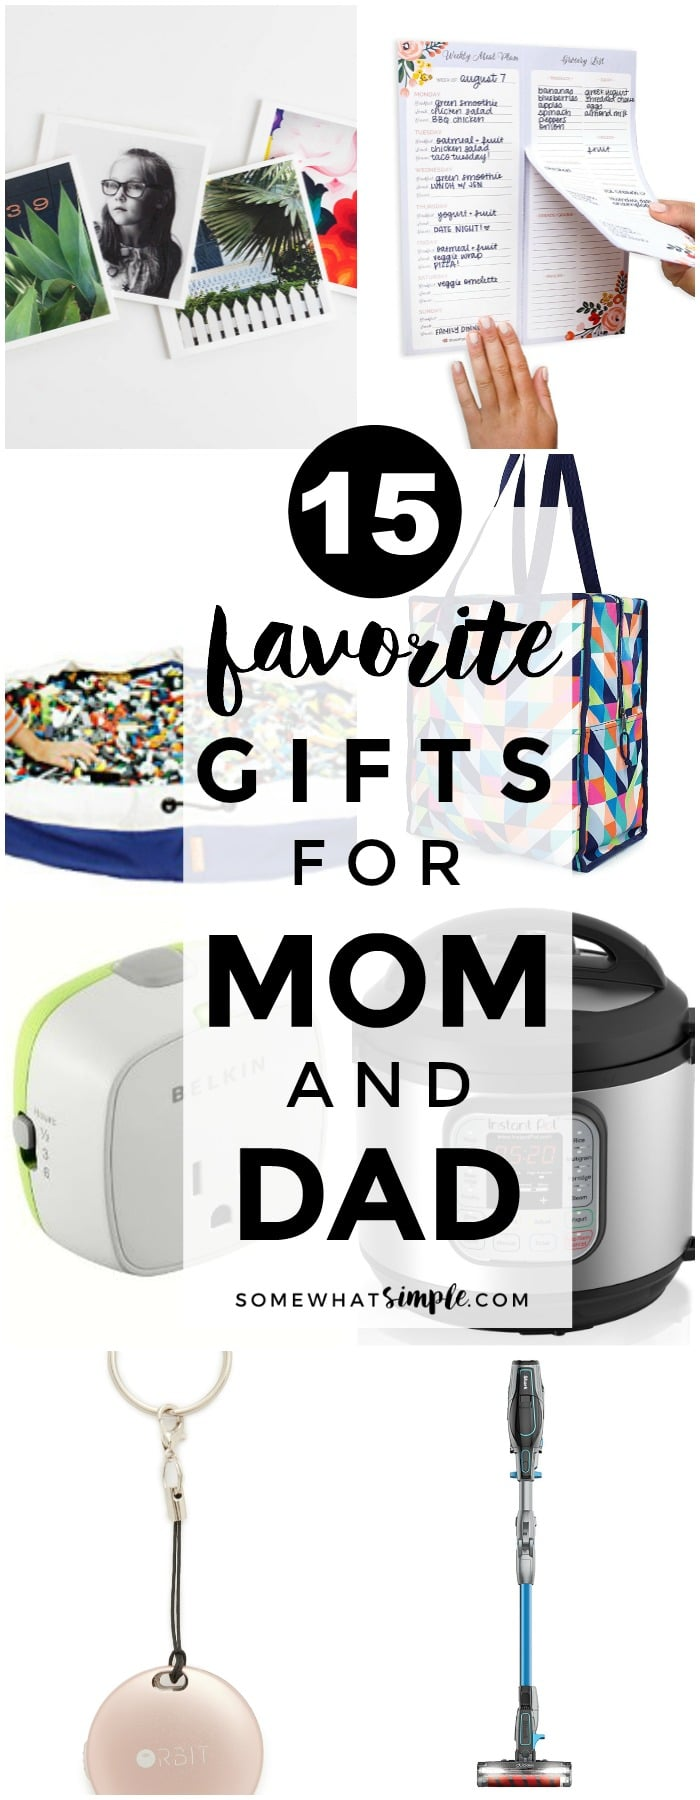 15 Favorite Gifts for Mom and Dad